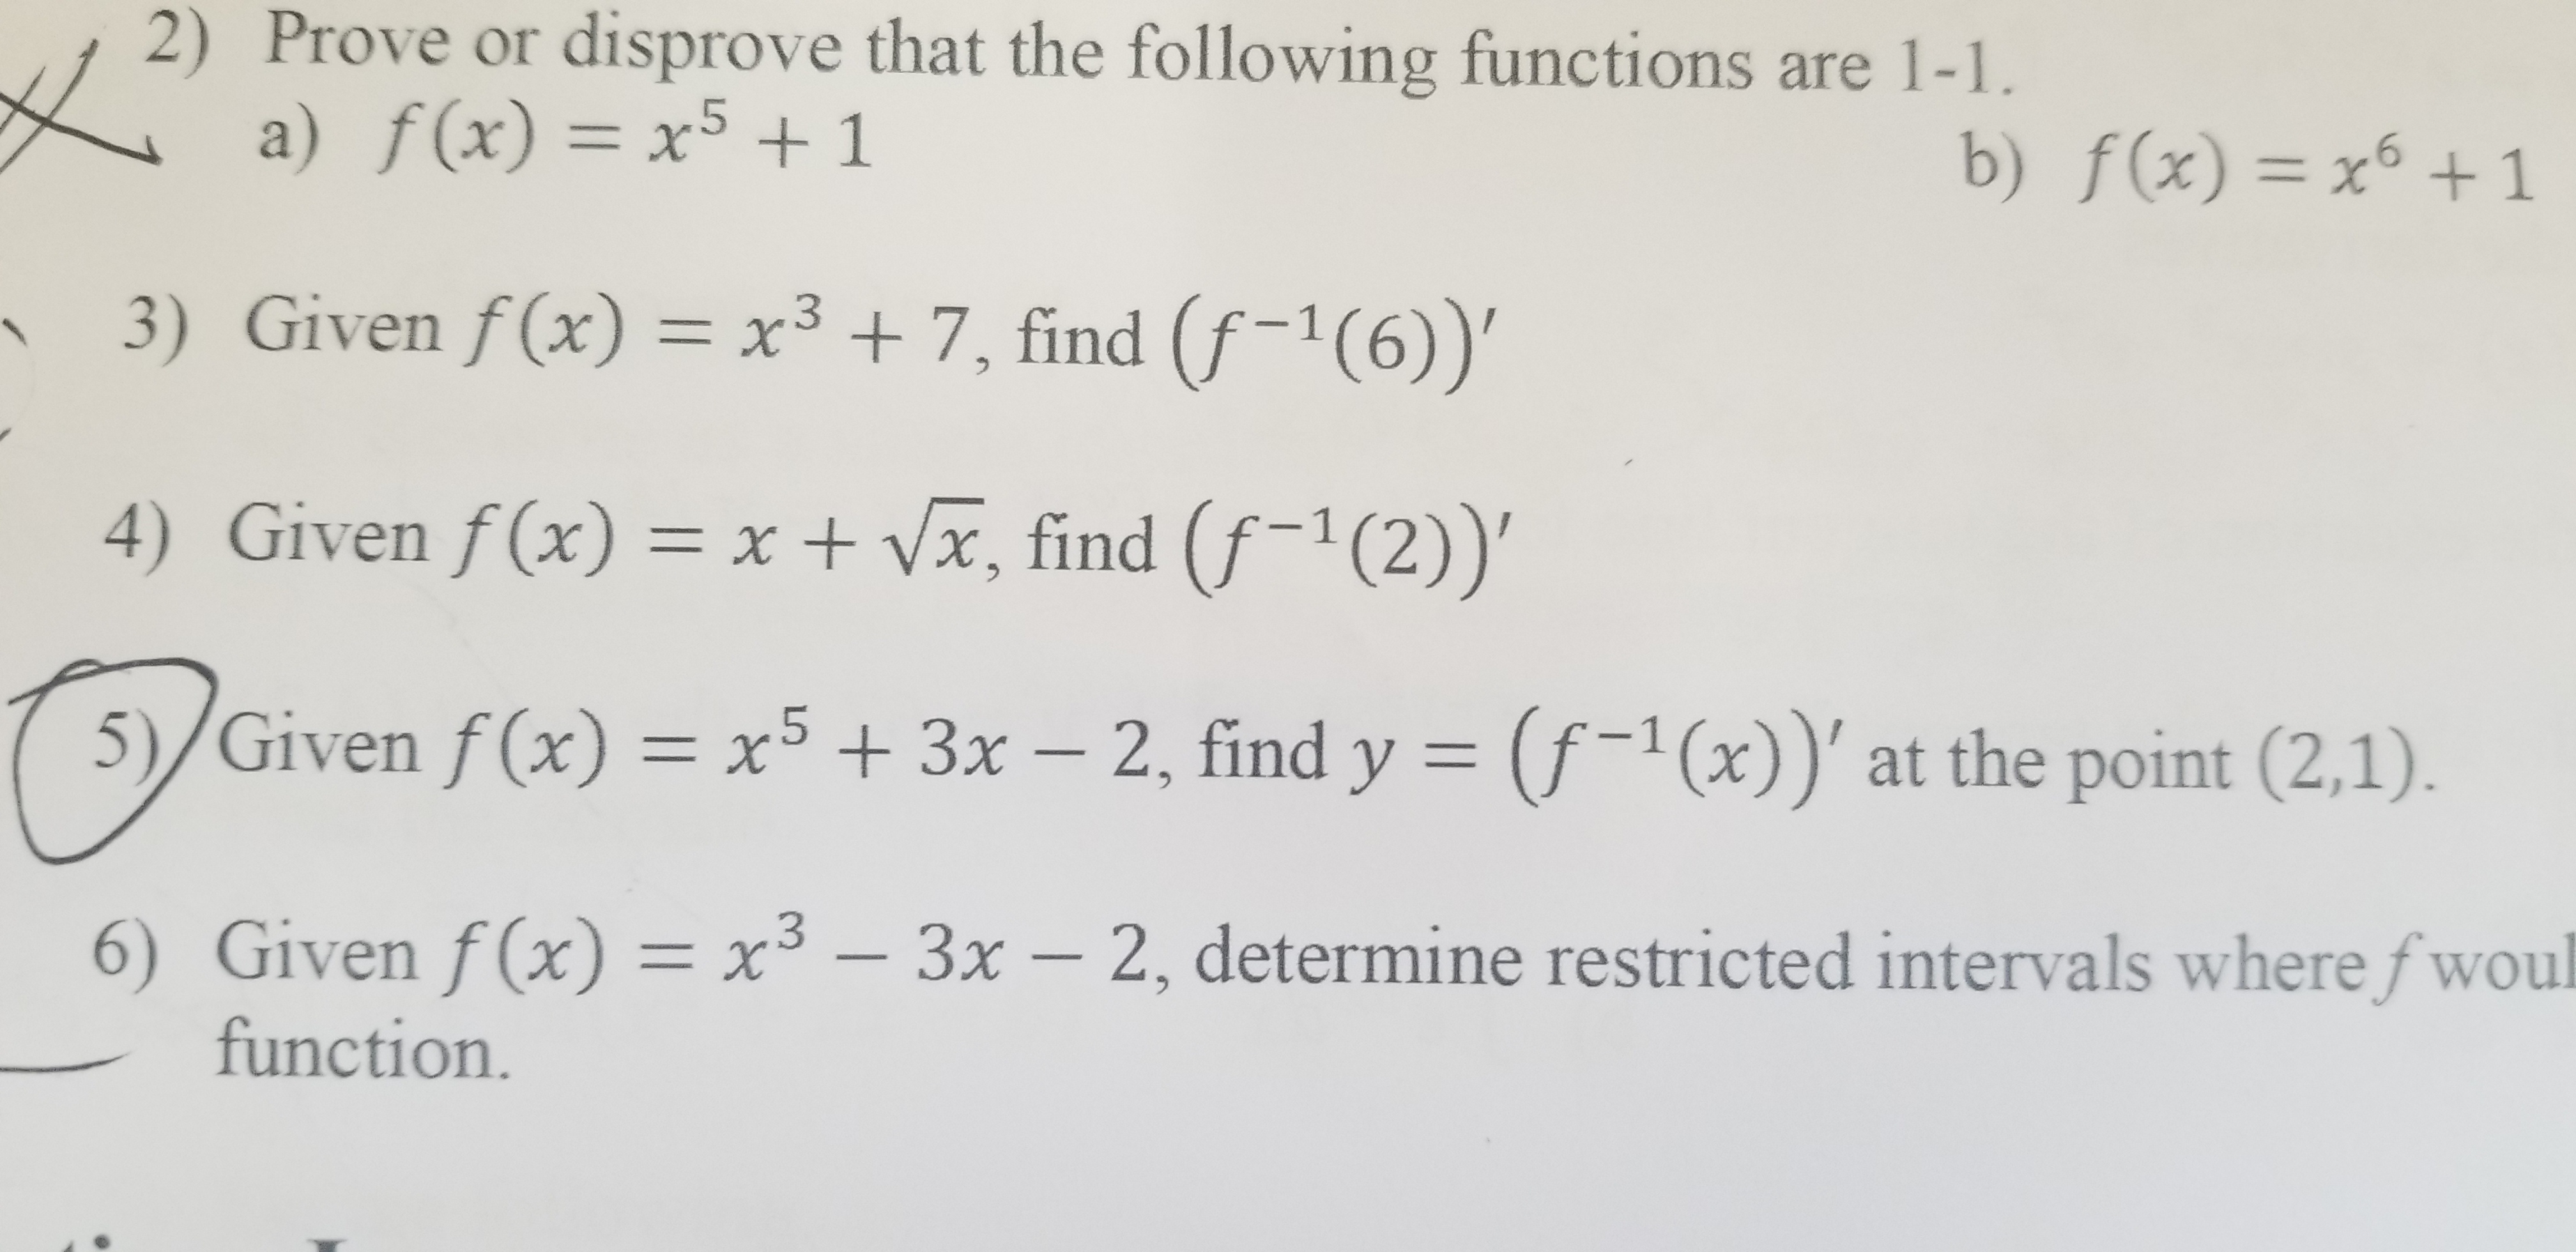 | 2) Prove or disprove that the following functions are 1-1 a) f(x) = x5 +1 b) f(x) = x1 -6 3) Given f(x) = x3 +7, find (f-1(6))' 4) Given f(x) = x + Vx, find (f-1 (2))' 5)/Given f(x) = x5 + 3x - 2, find y (f-1(x))' at the point (2,1). 6) Given f(x) = x3 - 3x- 2, determine restricted intervals where fwoul function.